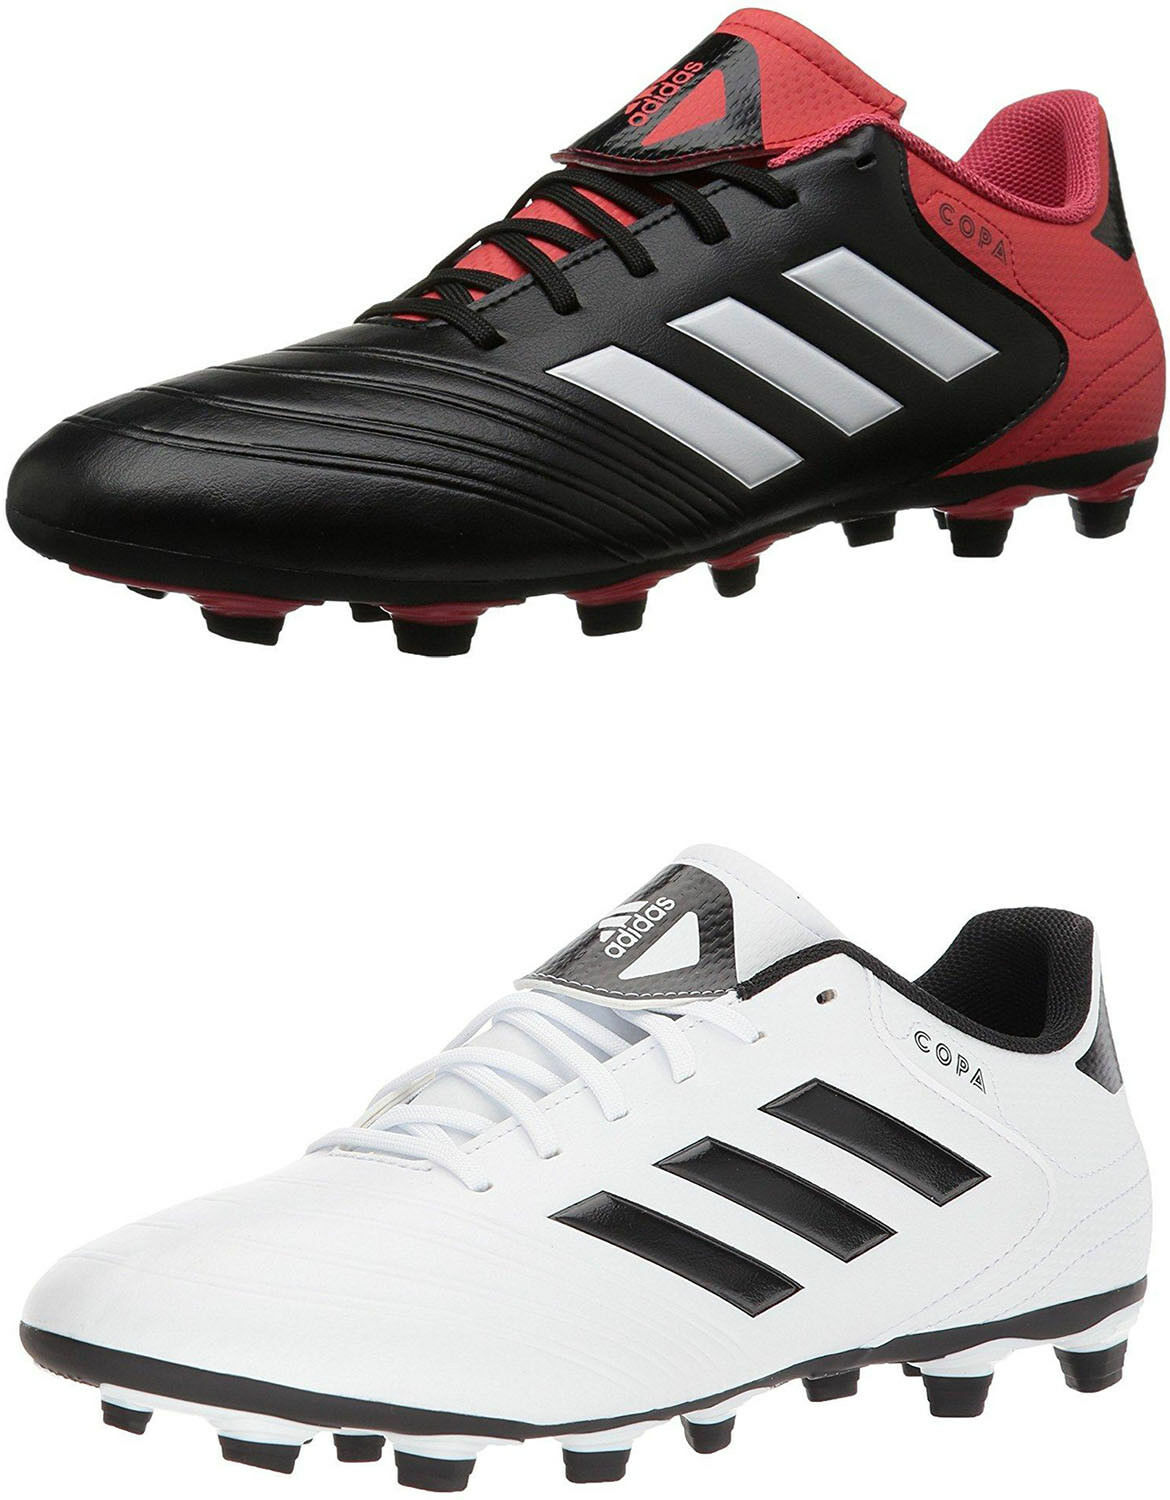 02138e98c00 adidas Men s Copa 18.4 Firm Ground Soccer Cleats